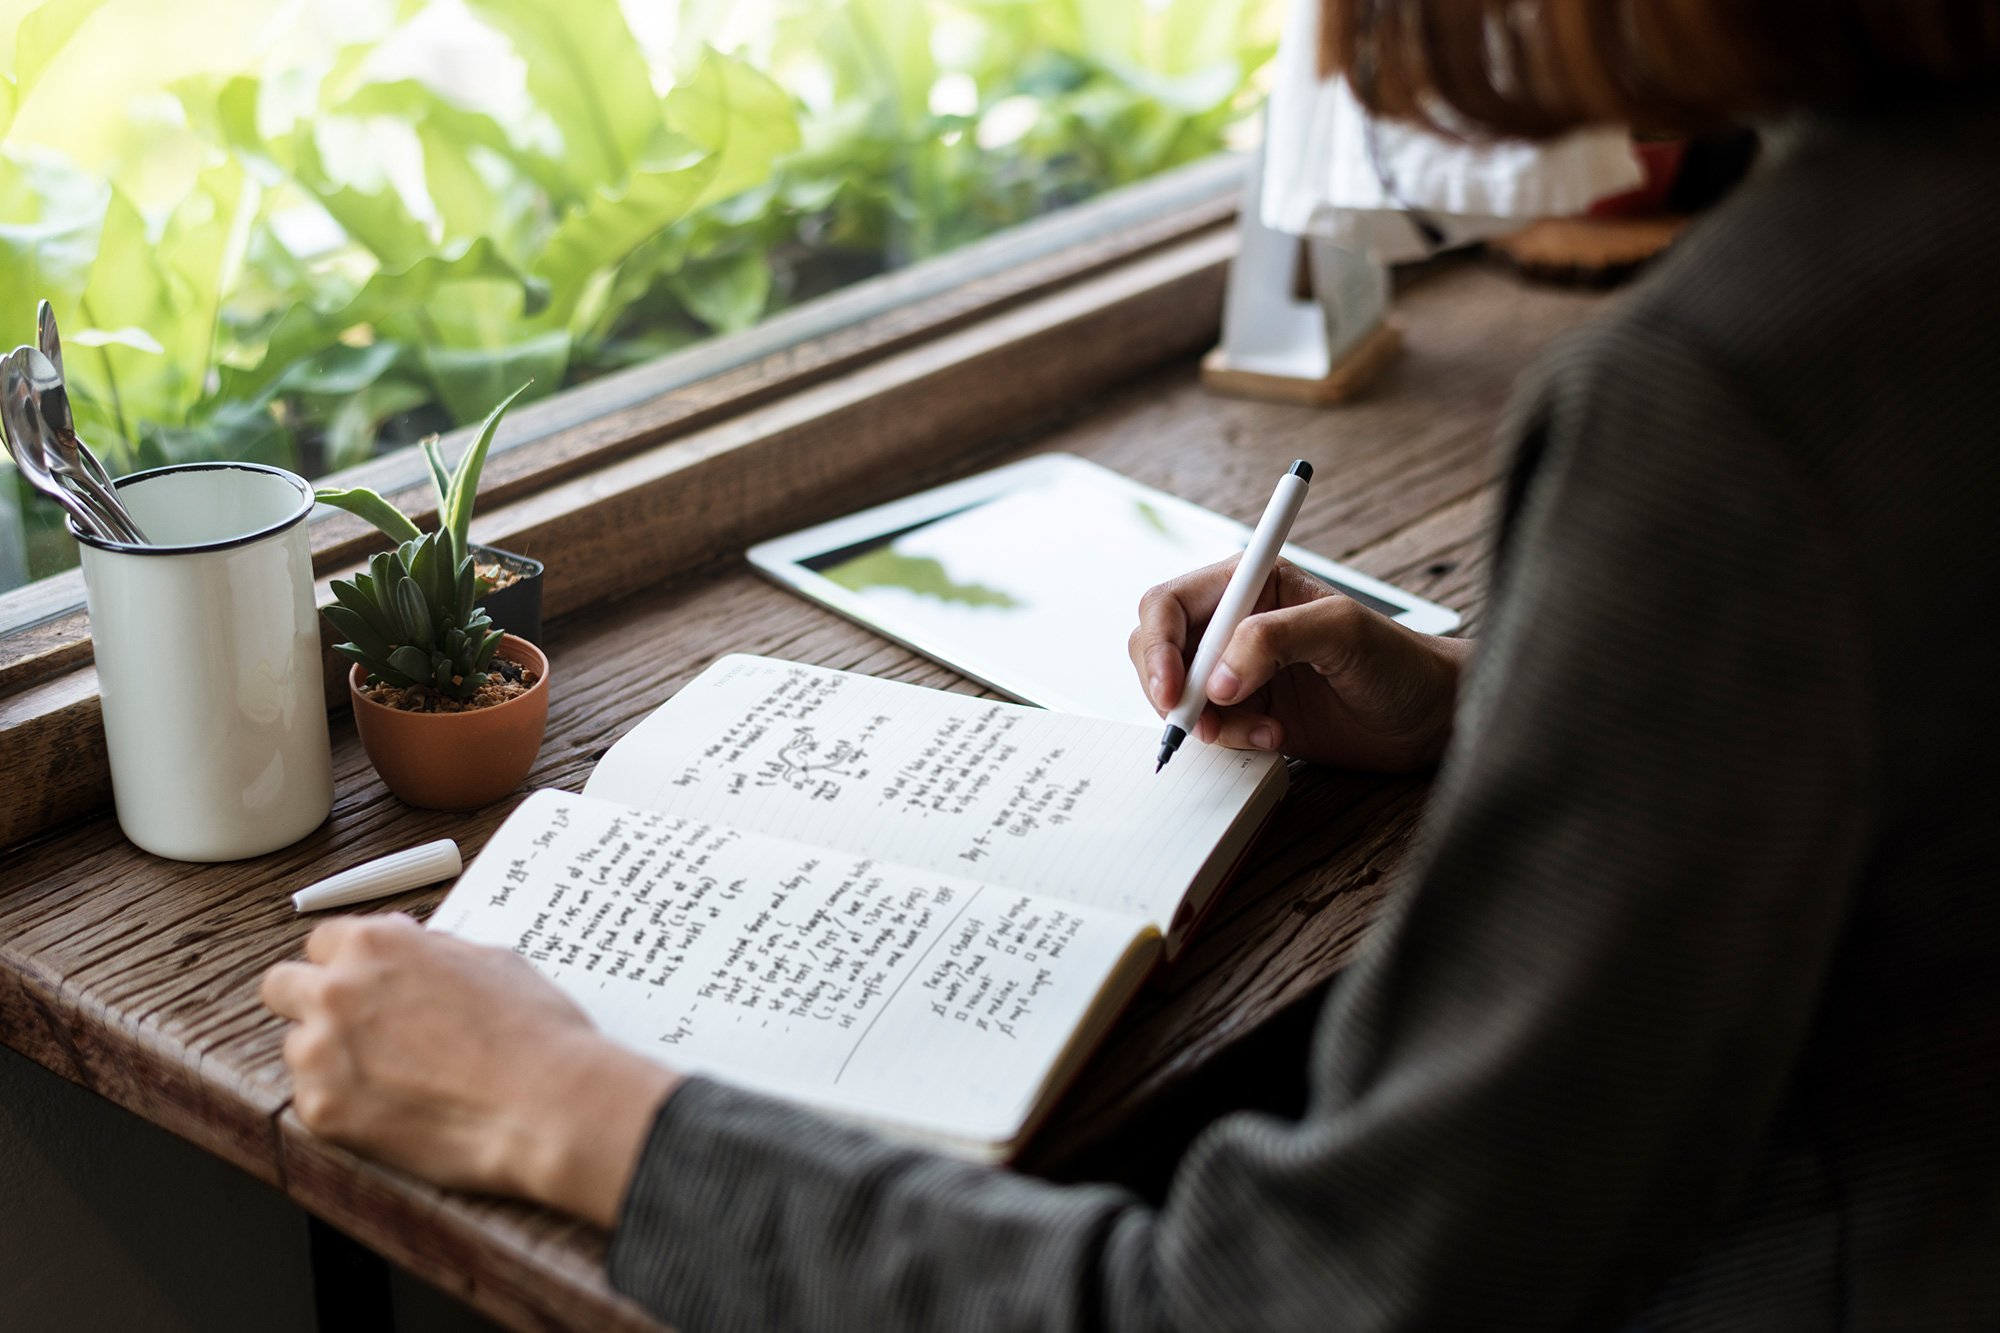 Woman taking notes in a journal